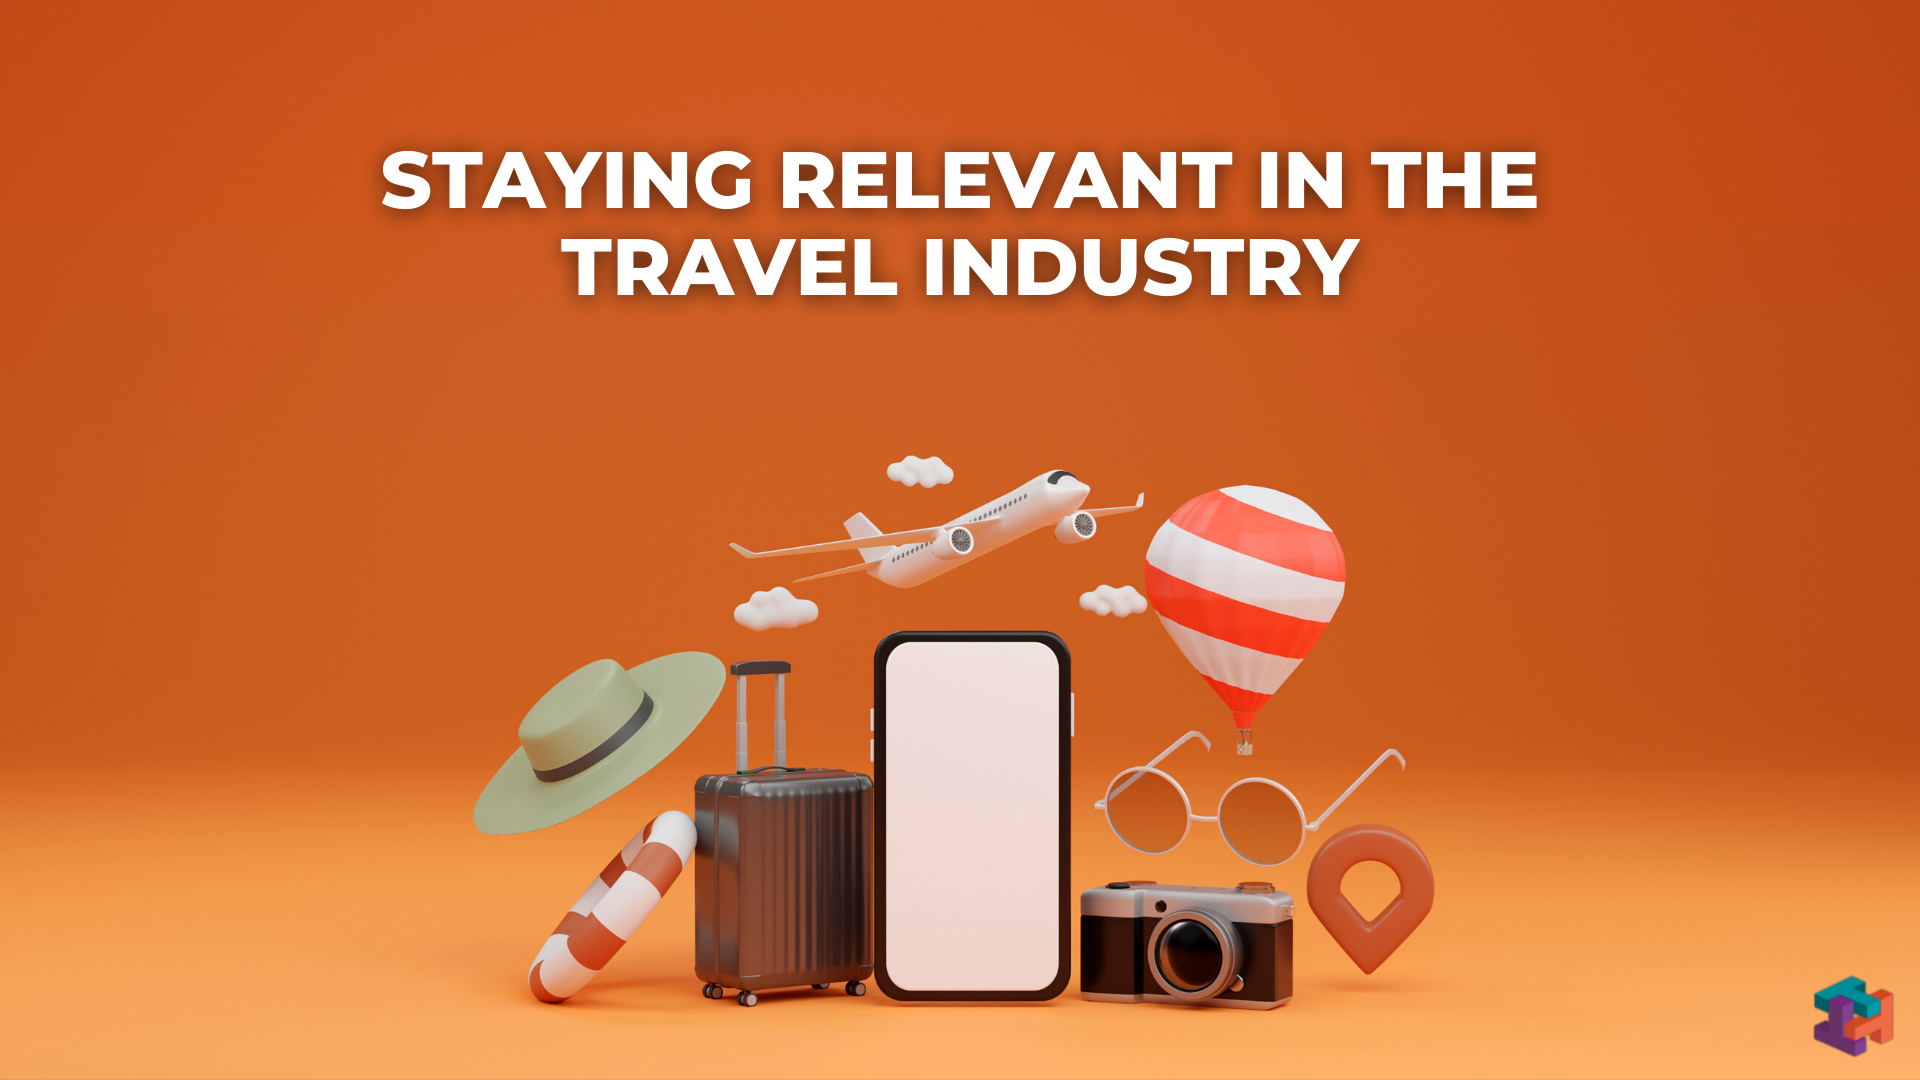 Staying relevant in the travel industry, travel, marketing